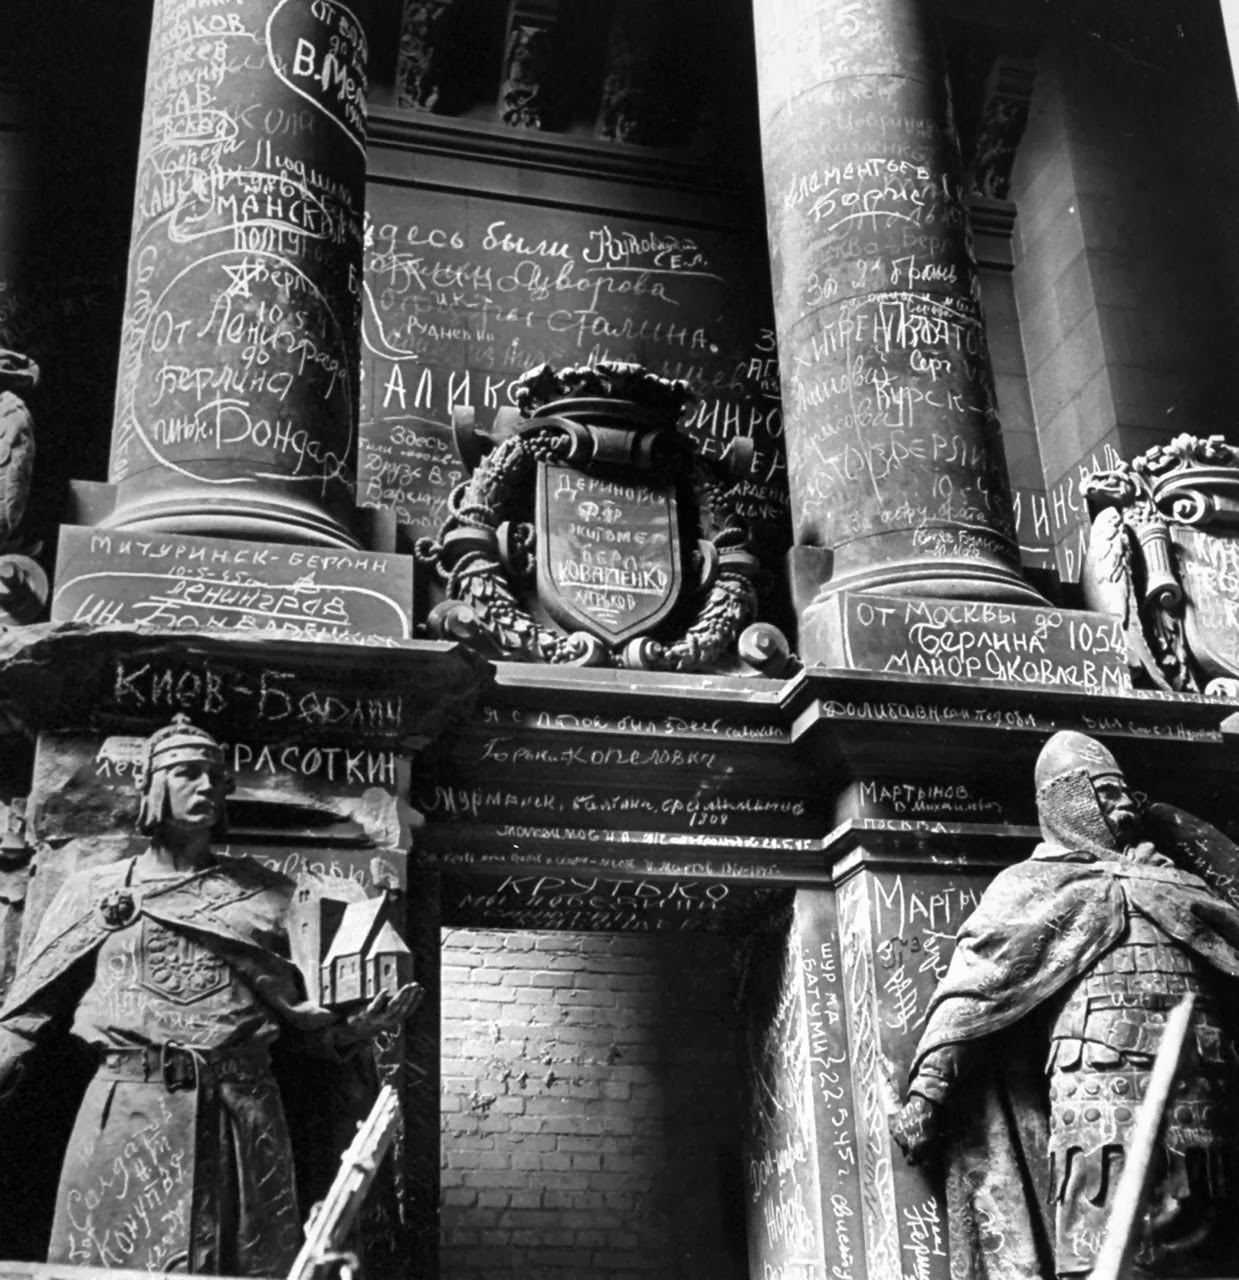 The Reichstag covered in Russian graffiti after being seized from the Nazis by the Red Army.